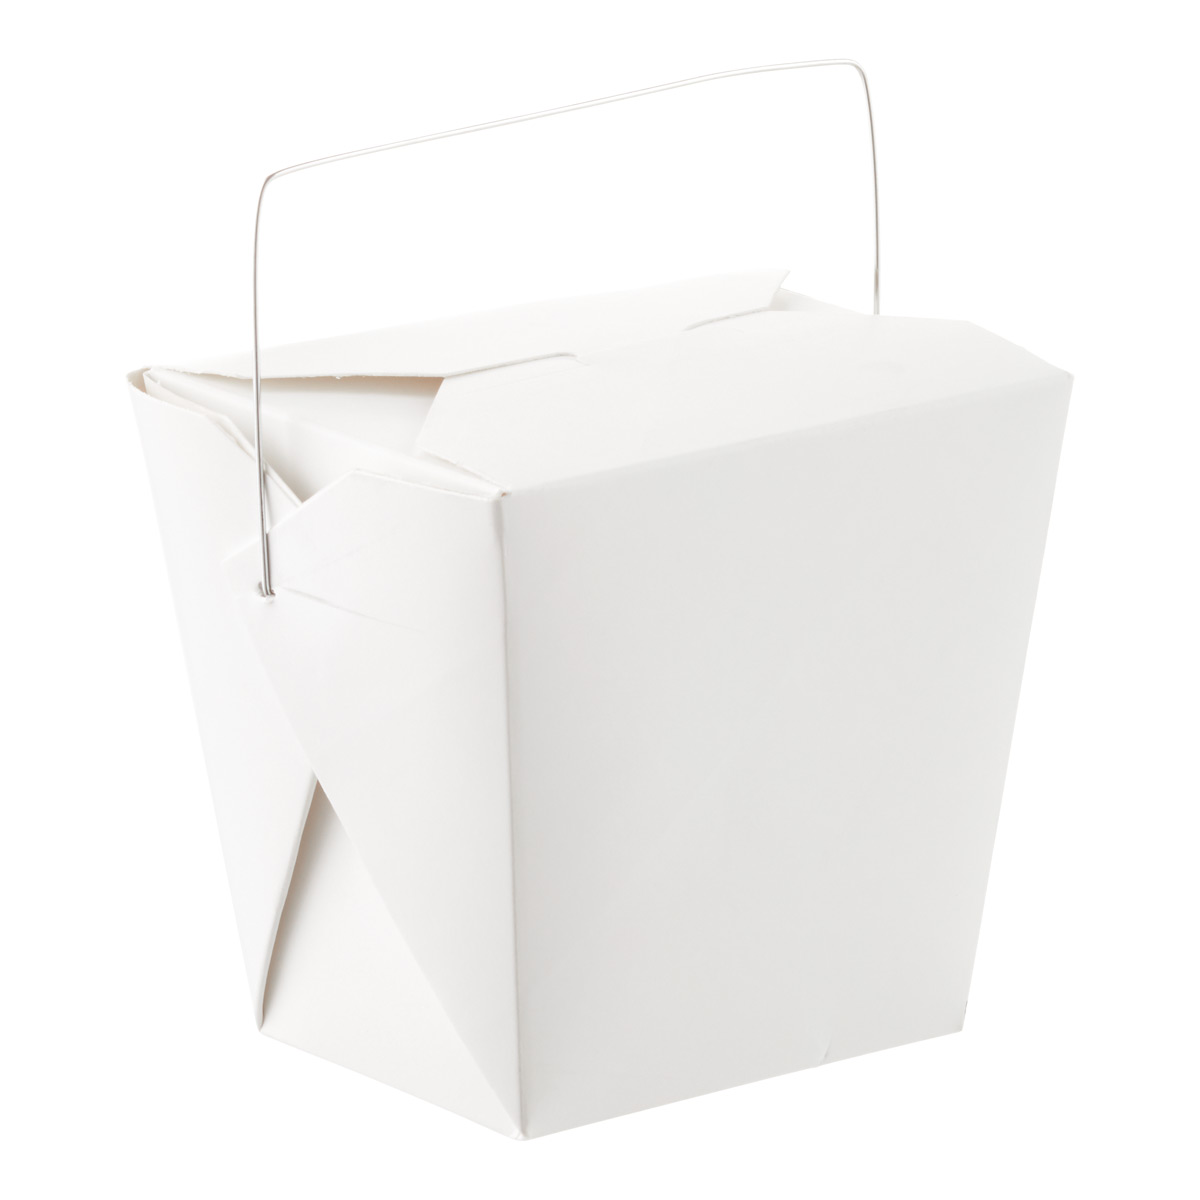 Take-Out Carton